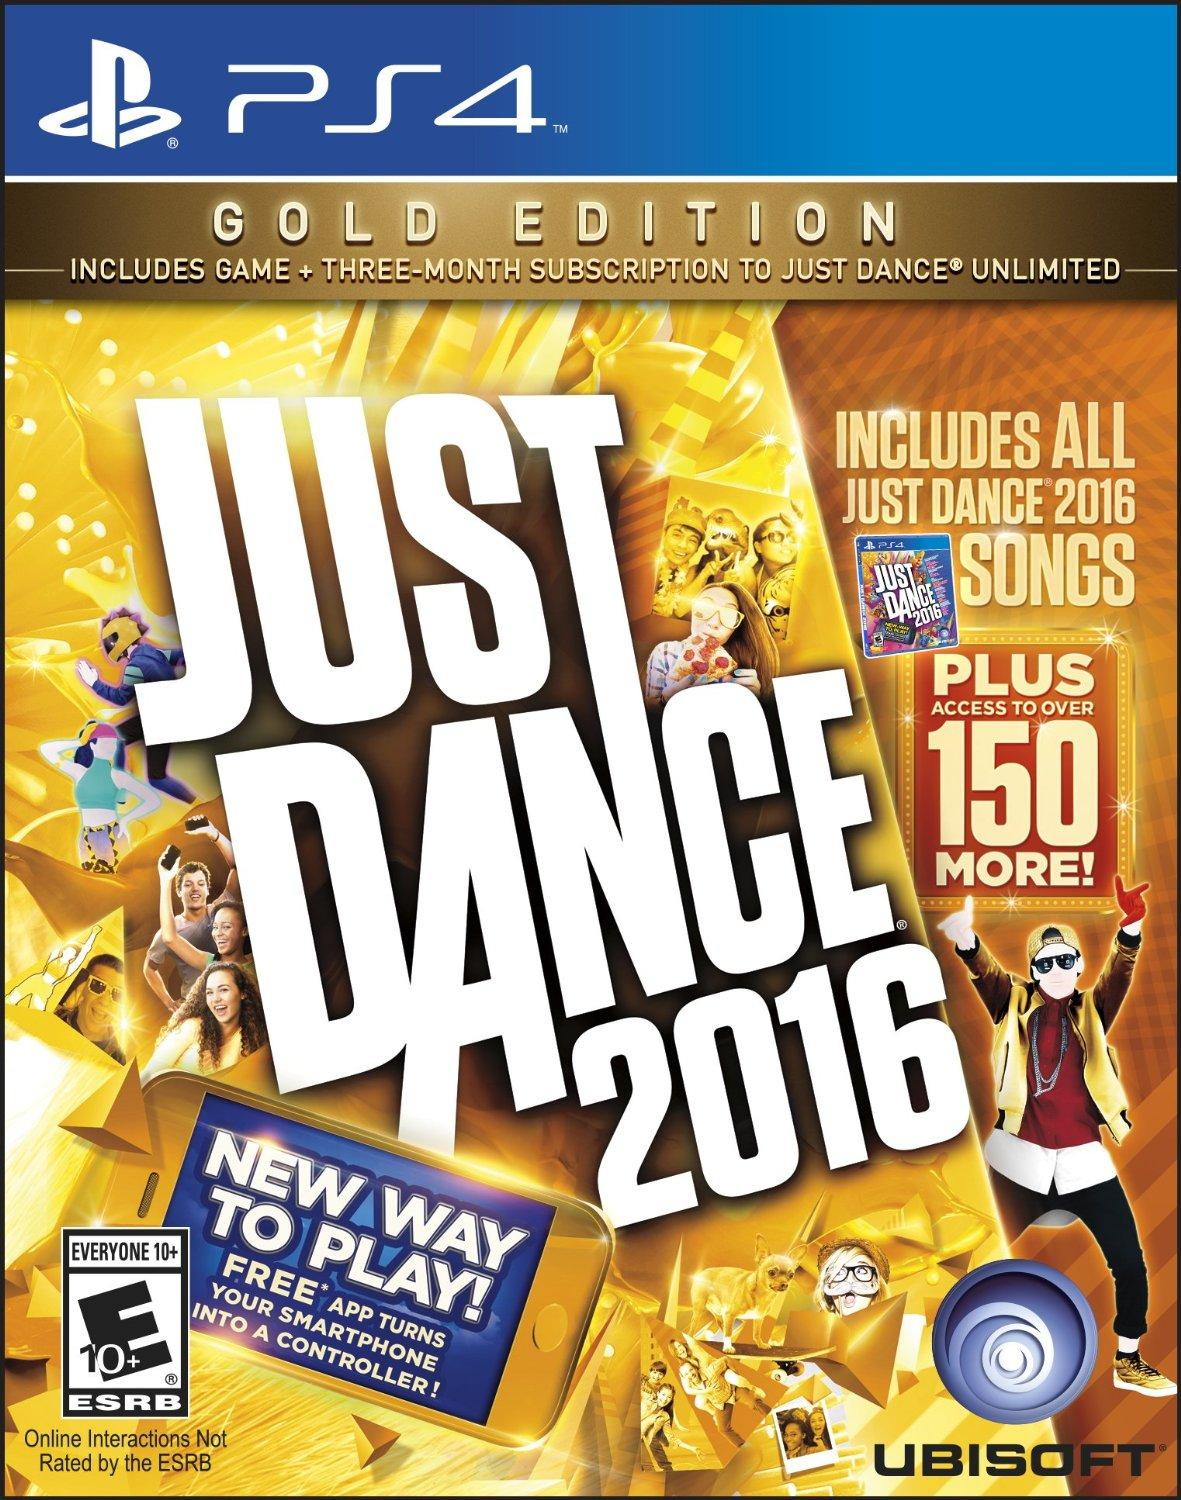 As low as $19.99 Just Dance 2016 and Just Dance Disney Party 2